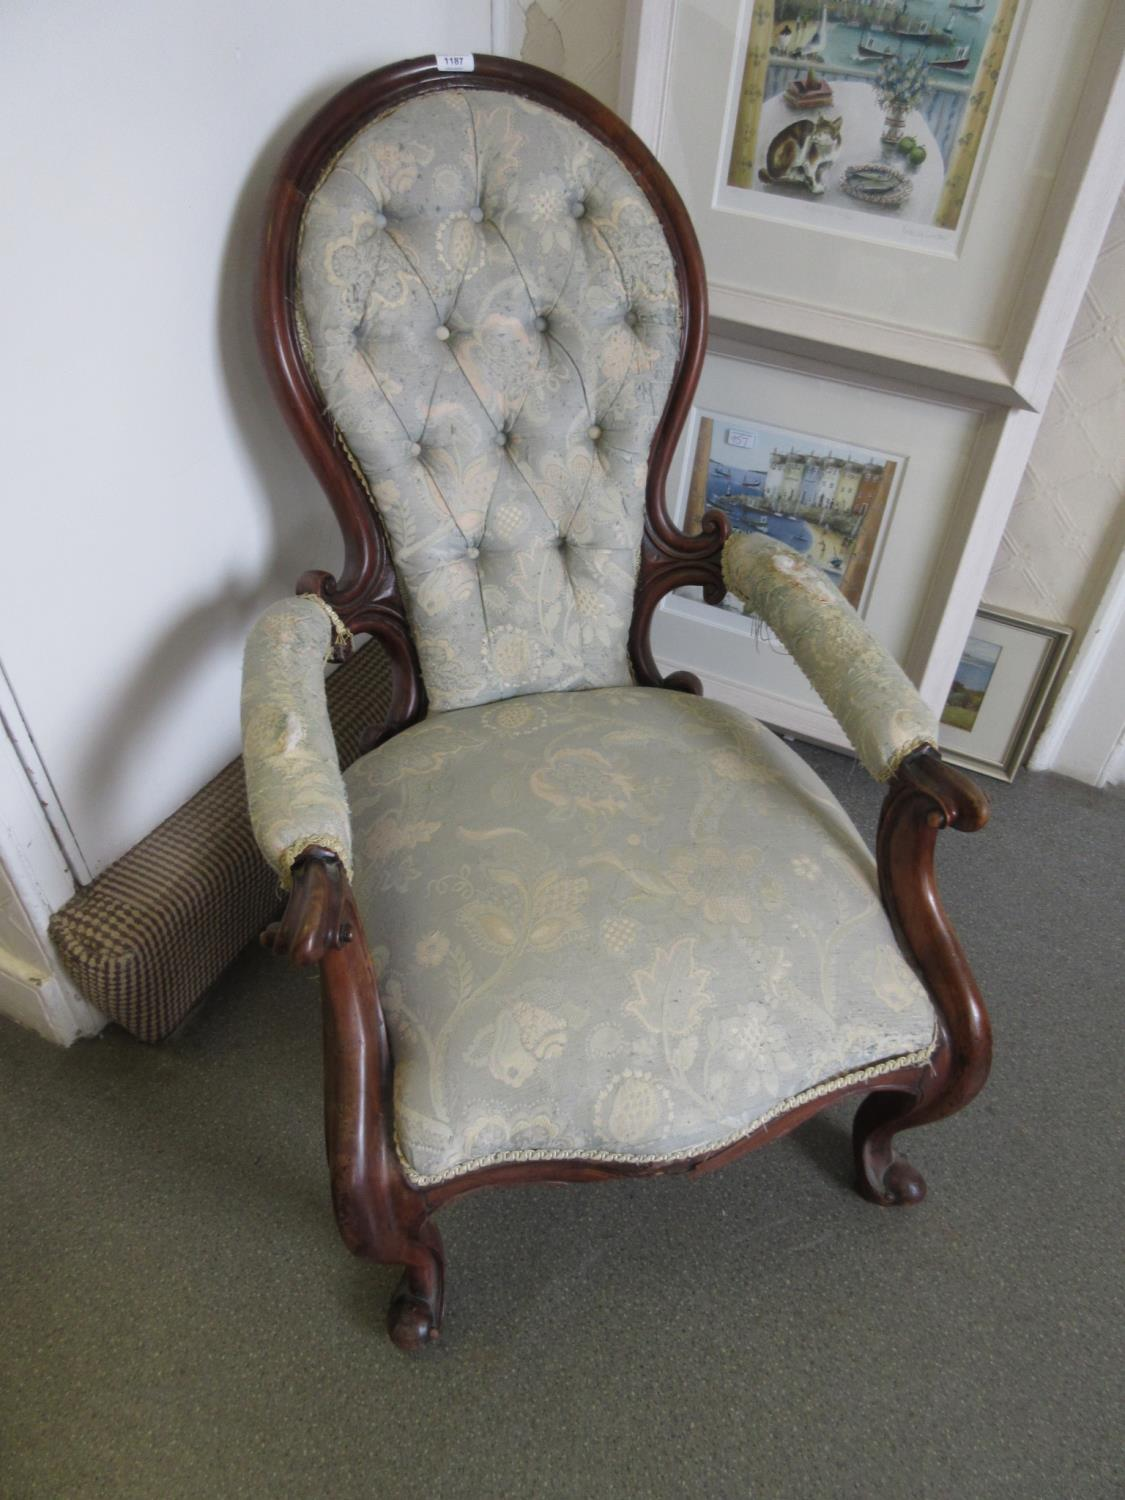 Victorian walnut button upholstered spoon back armchair having C-scroll carved arm supports and legs - Image 2 of 2